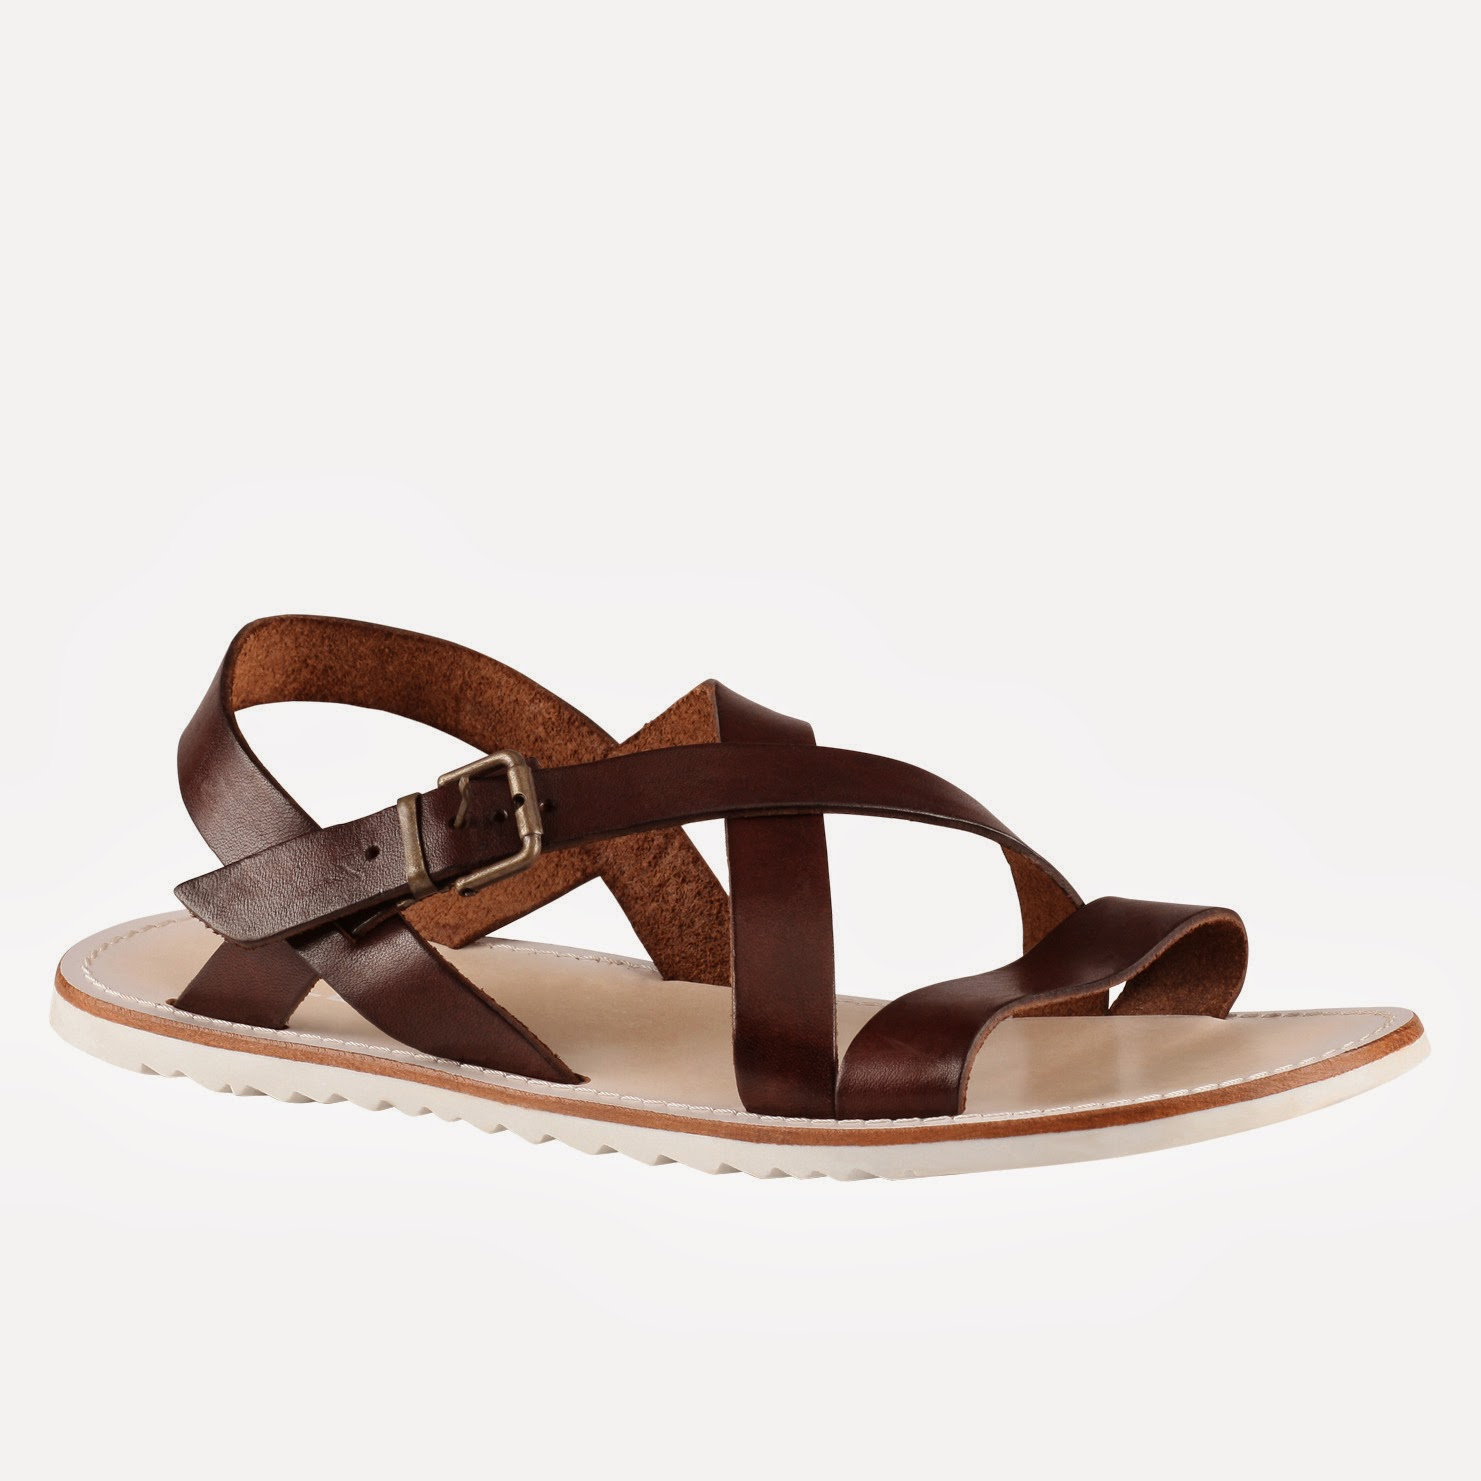 Leather sandals for men aldo leather sandals for men bally daiki leather fisherman sandals 395 at neiman marcus buycottarizona Gallery